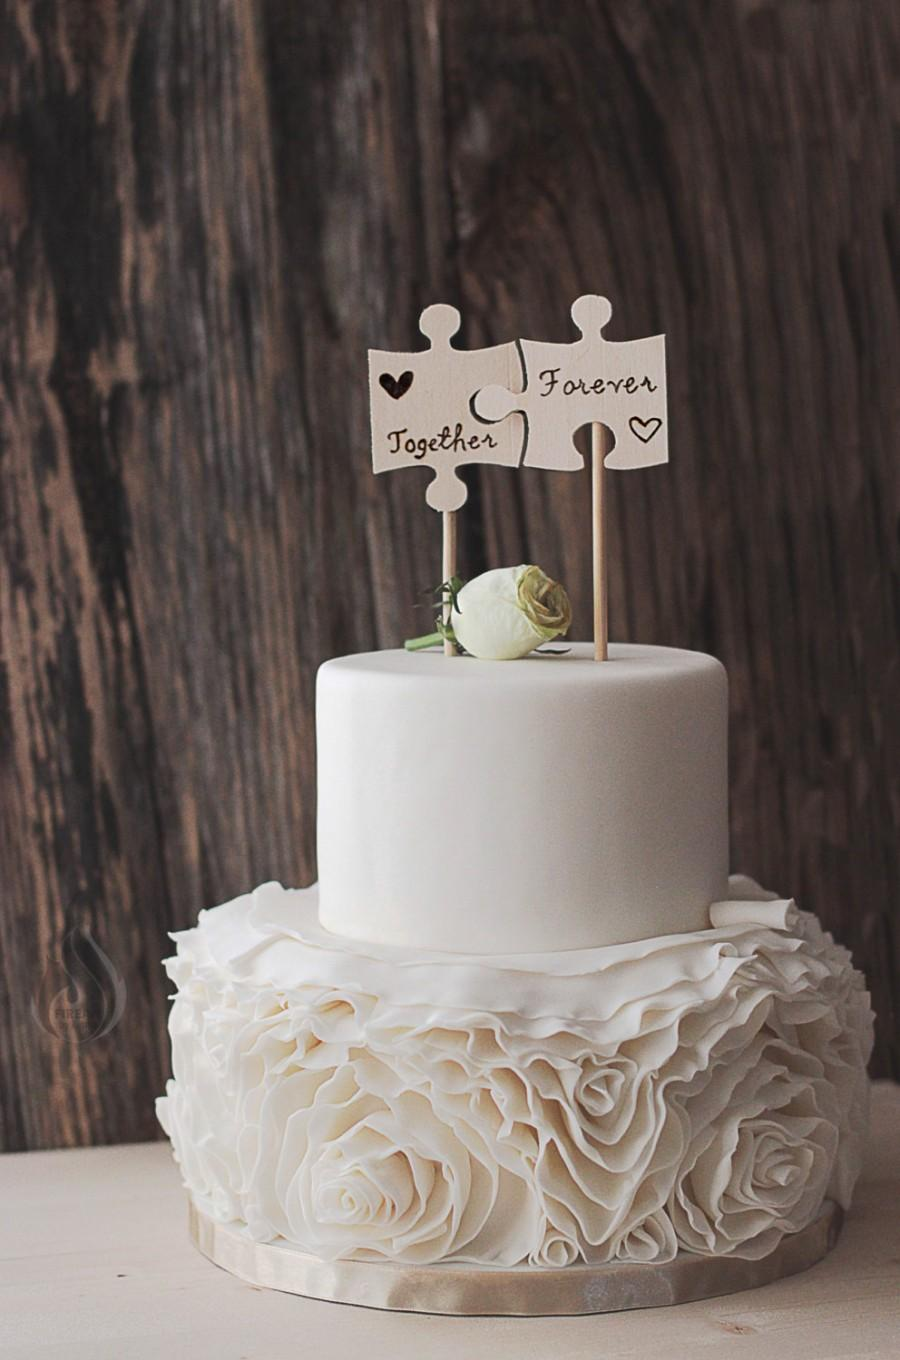 Свадьба - Wedding Cake Flags - Wood Burned Puzzle Pieces - Best Day Ever - Wooden Cake Topper - Rustic Wedding Cake Topper - Cake Topper - Handmade